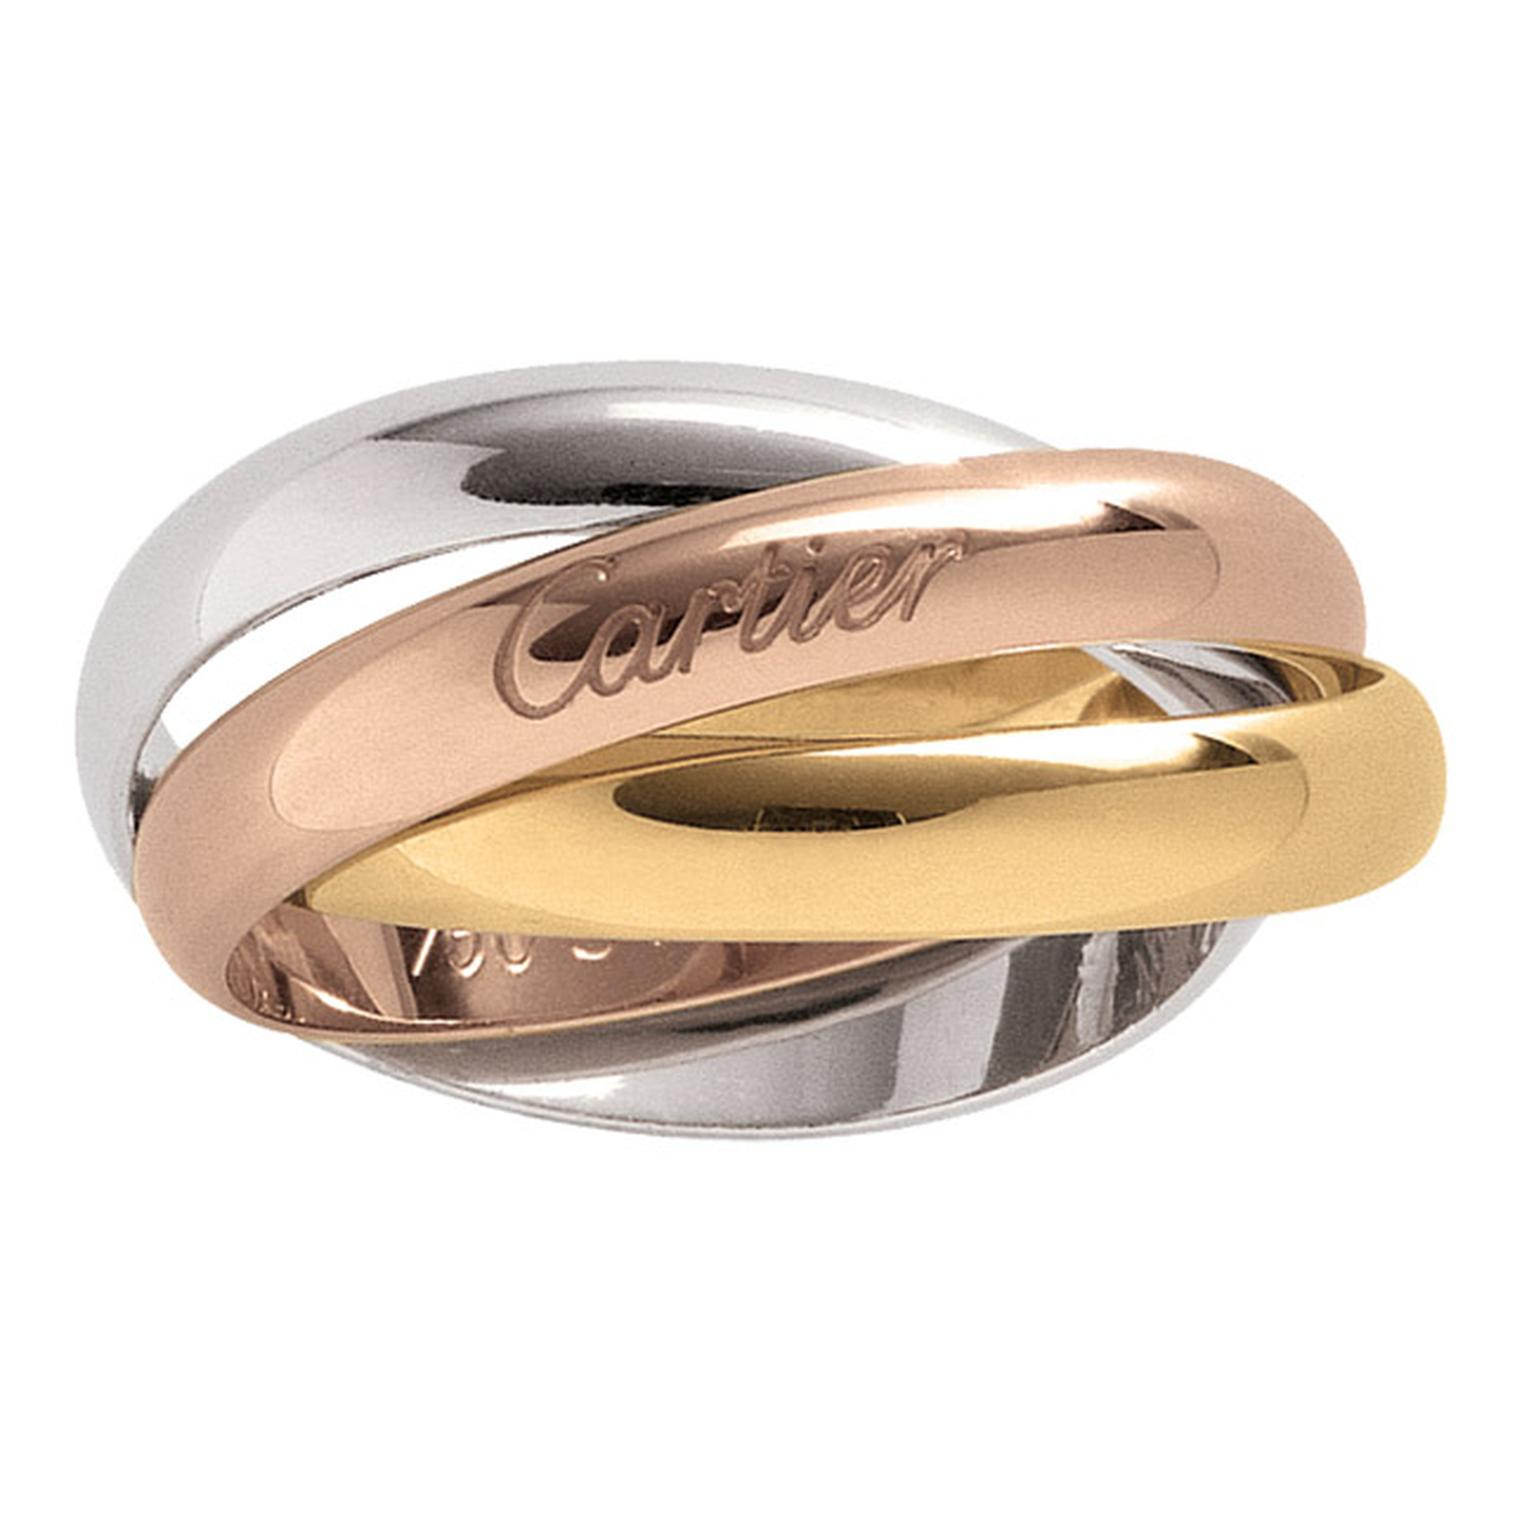 Cartier-Trinity-Ring-Main